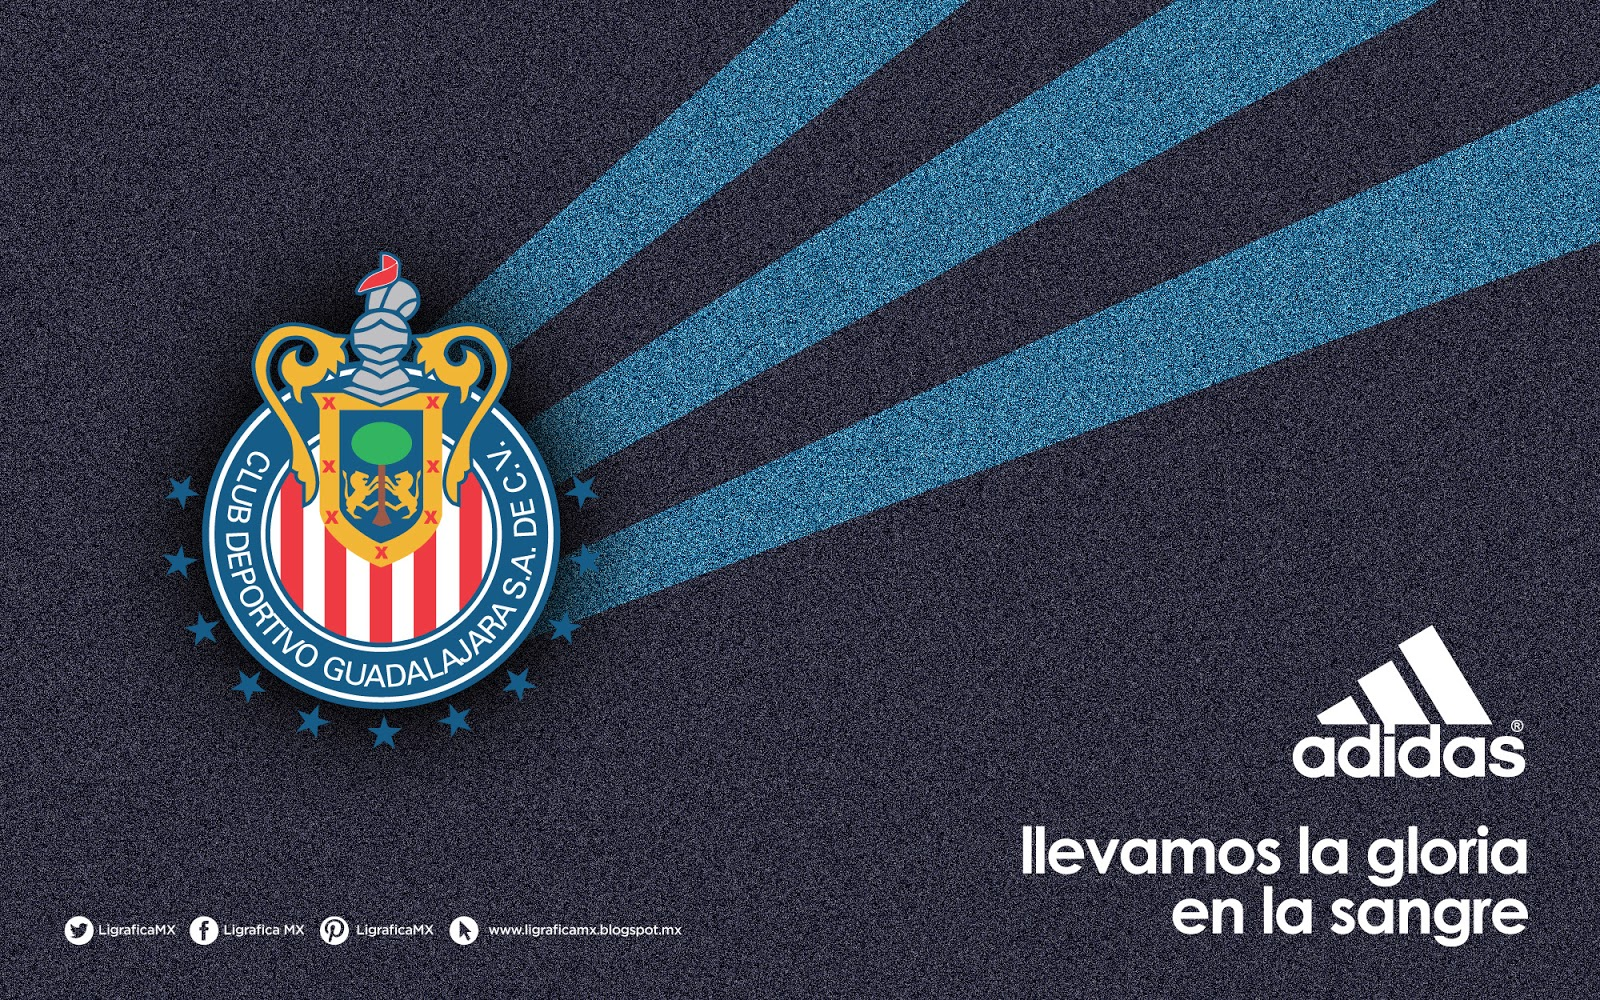 Chivas adidas wallpaper and background image 1600x1000 id598444 products adidas chivas wallpaper voltagebd